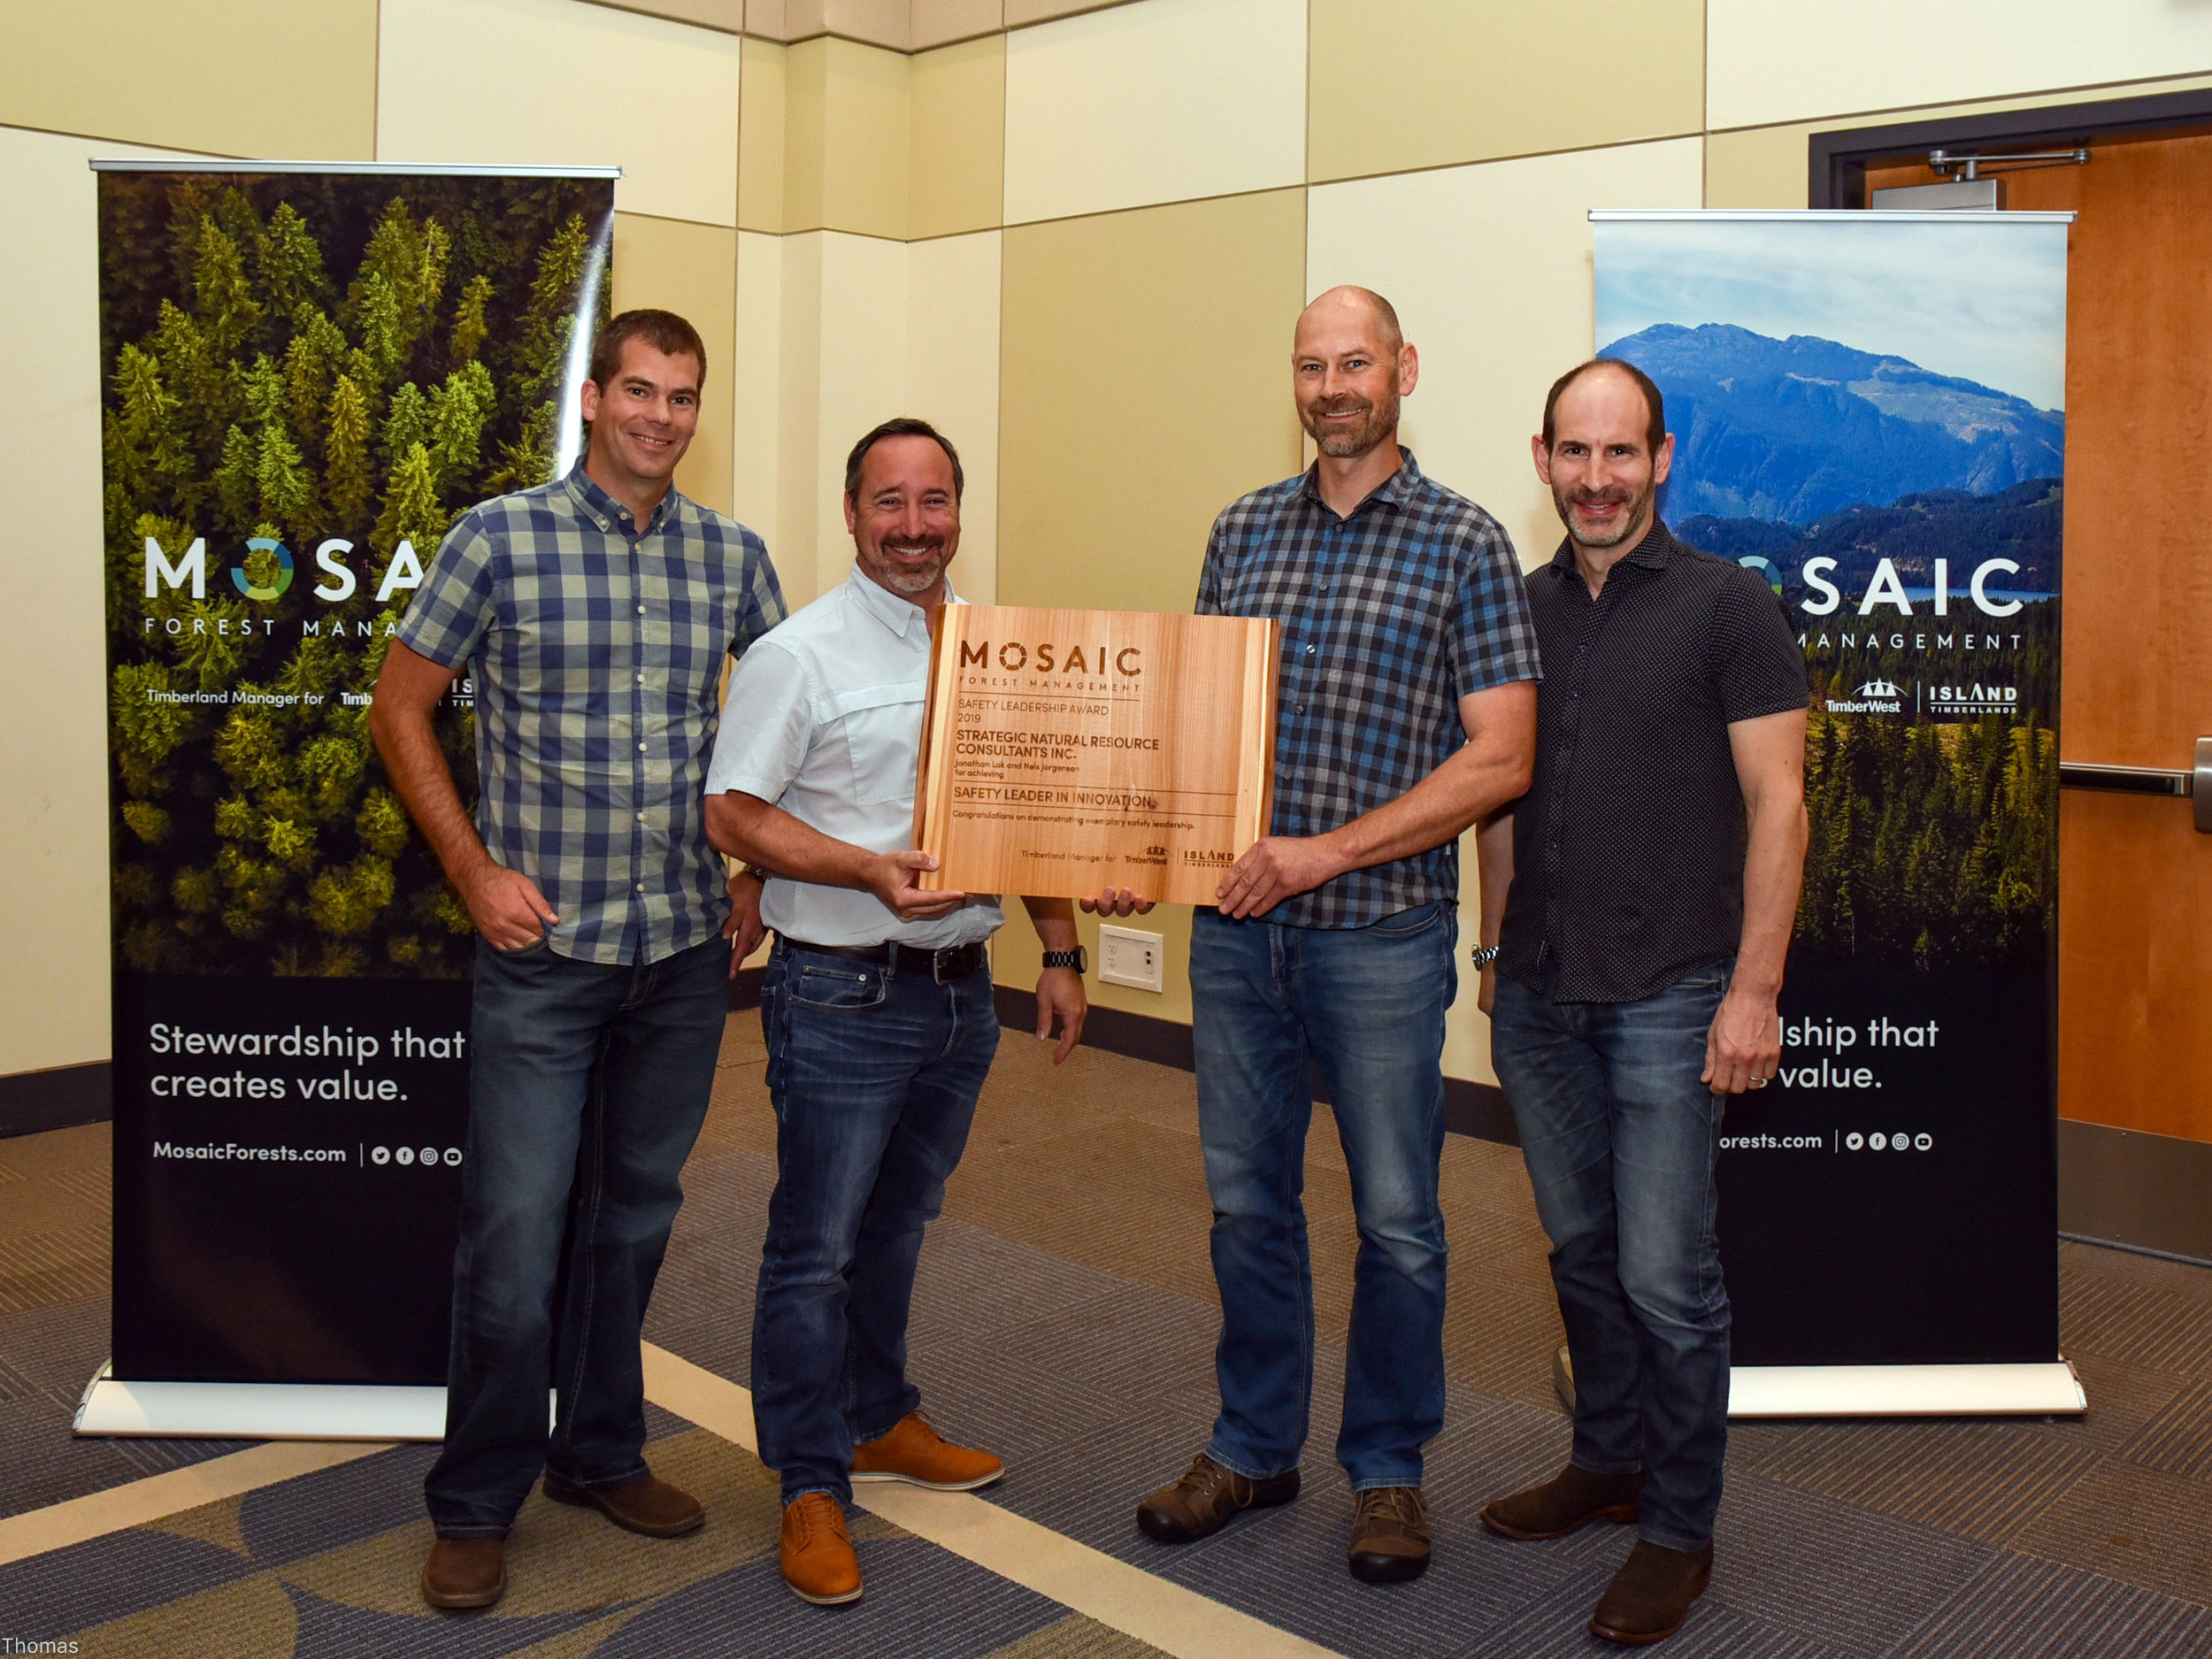 (l to r) Aaron Racher, General Manager Operations – North Island for Mosaic Forest Management; Aaron Frost and Nels Jorgenson, of Strategic Natural Resource Consultants Inc.; and Jeff Zweig, Mosaic's President and Chief Executive Officer.